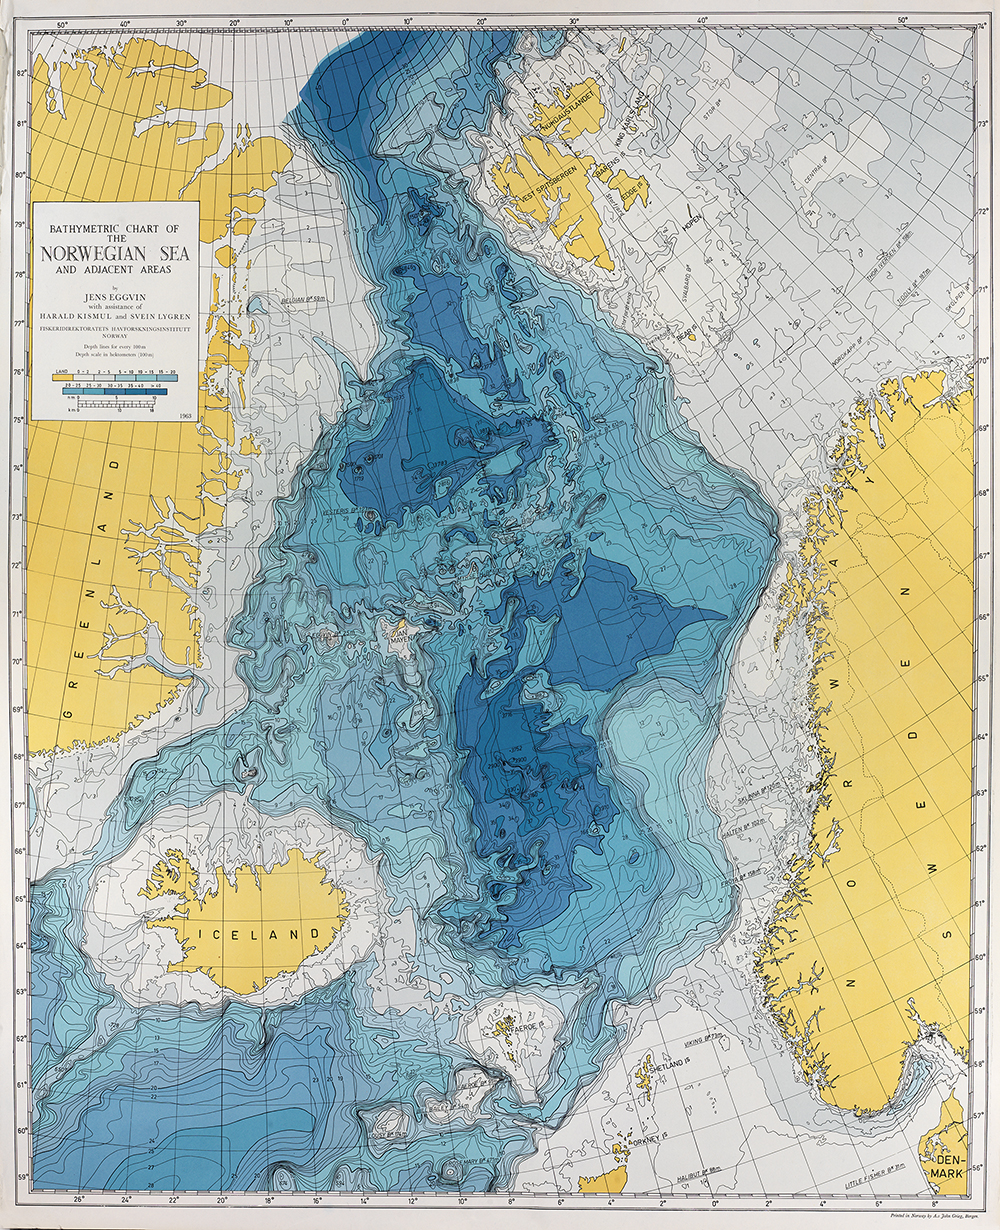 New UiB Flagship | Centre for Geobiology | University of Bergen Map Of Norwegian Sea Area on map of marginal seas, map of l'anse aux meadows, map of humboldt current, map of the arctic ocean, map of gulf of mexico, map of kiev, map of gulf of aden, map of bergen, map of narvik, map of upper peninsula of michigan, map of oslo, map of norway, map of arctic circle, map of strait of malacca, map of gulf of venezuela, map of dardanelles, map of fernando de noronha, map of bay of biscay, map of persian gulf, map of english channel,